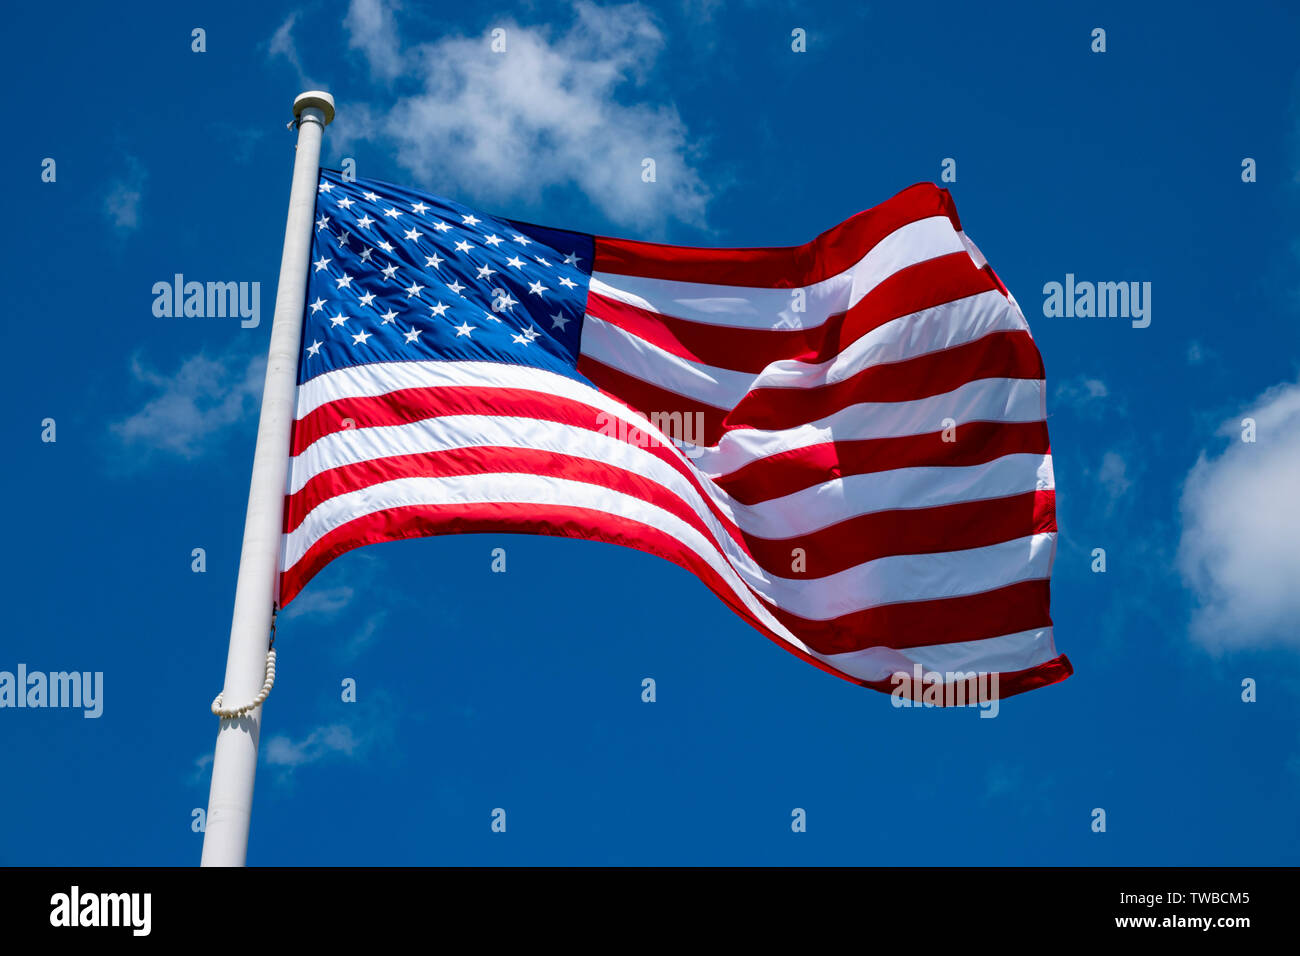 usa-united-states-national-flag-flying-on-a-flagpole-on-a-windy-day-TWBCM5.jpg